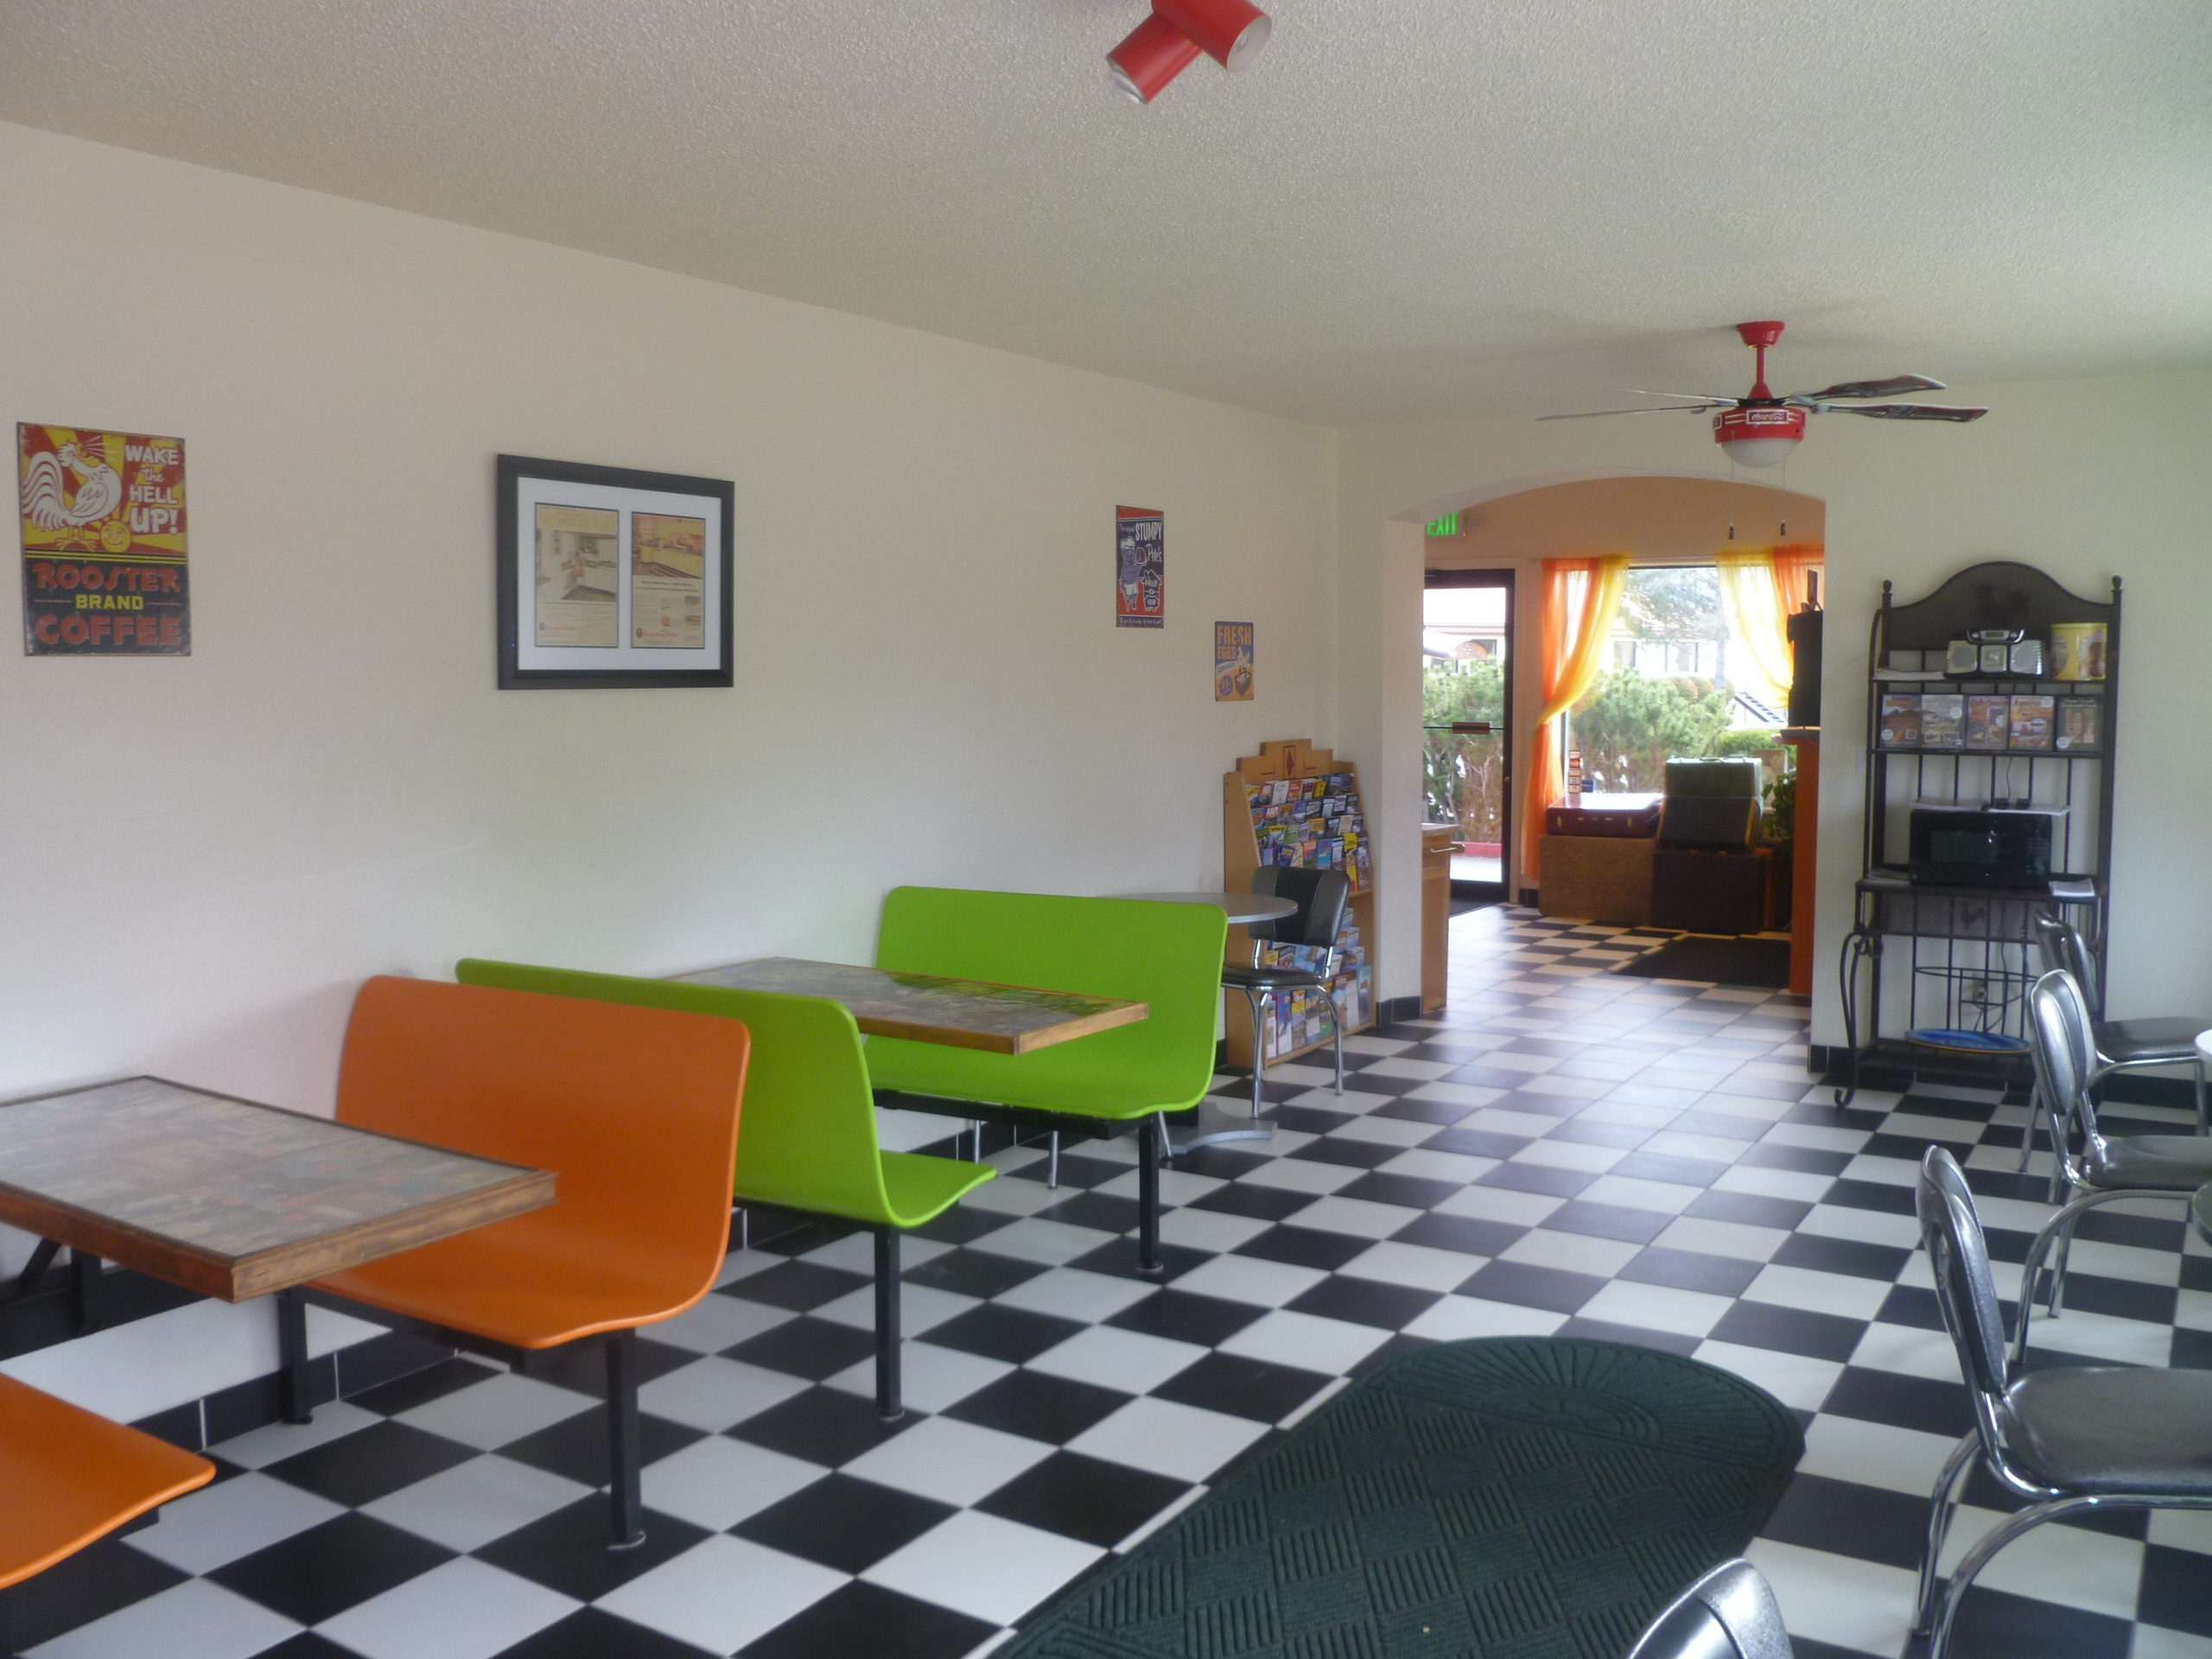 Retro Inn Breakfast Room